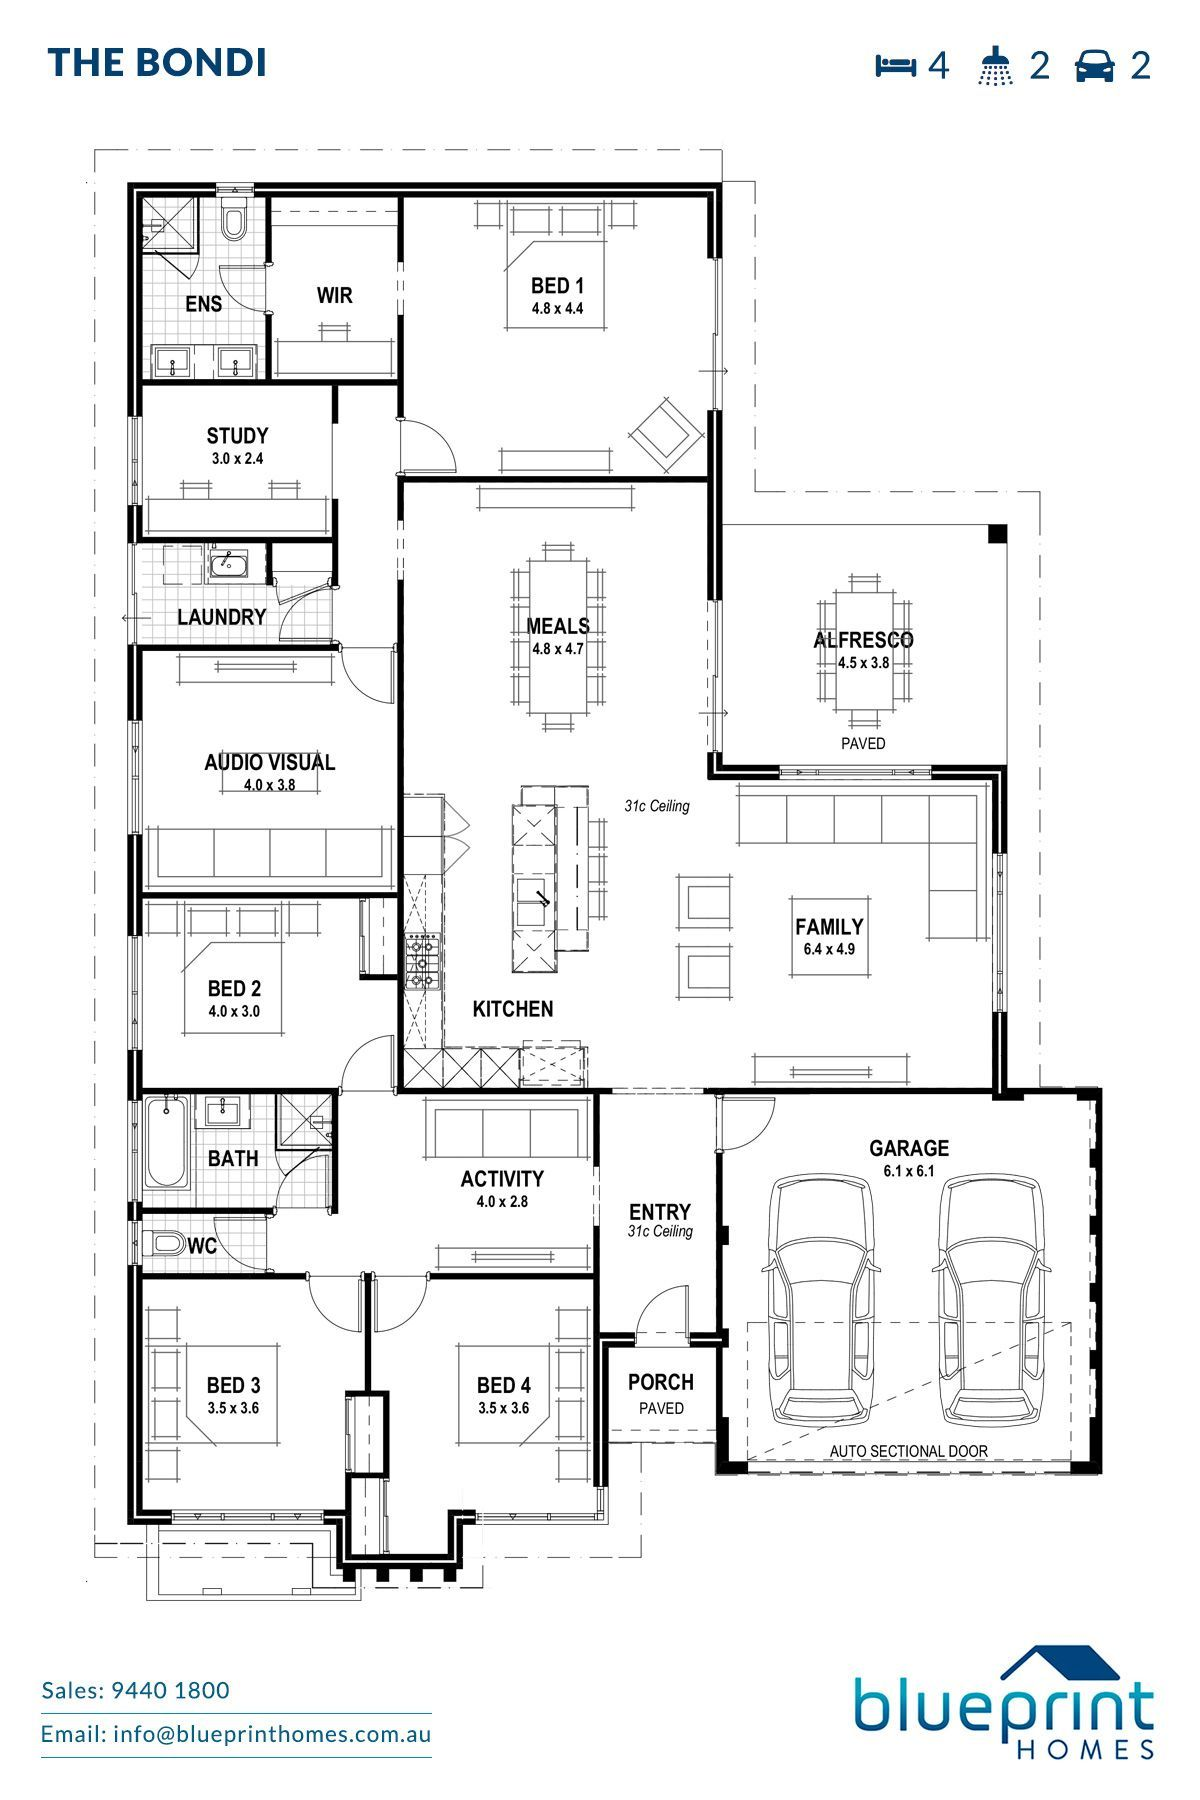 The bondi blueprint homes architecture architecture future the bondi blueprint homes architecture malvernweather Image collections